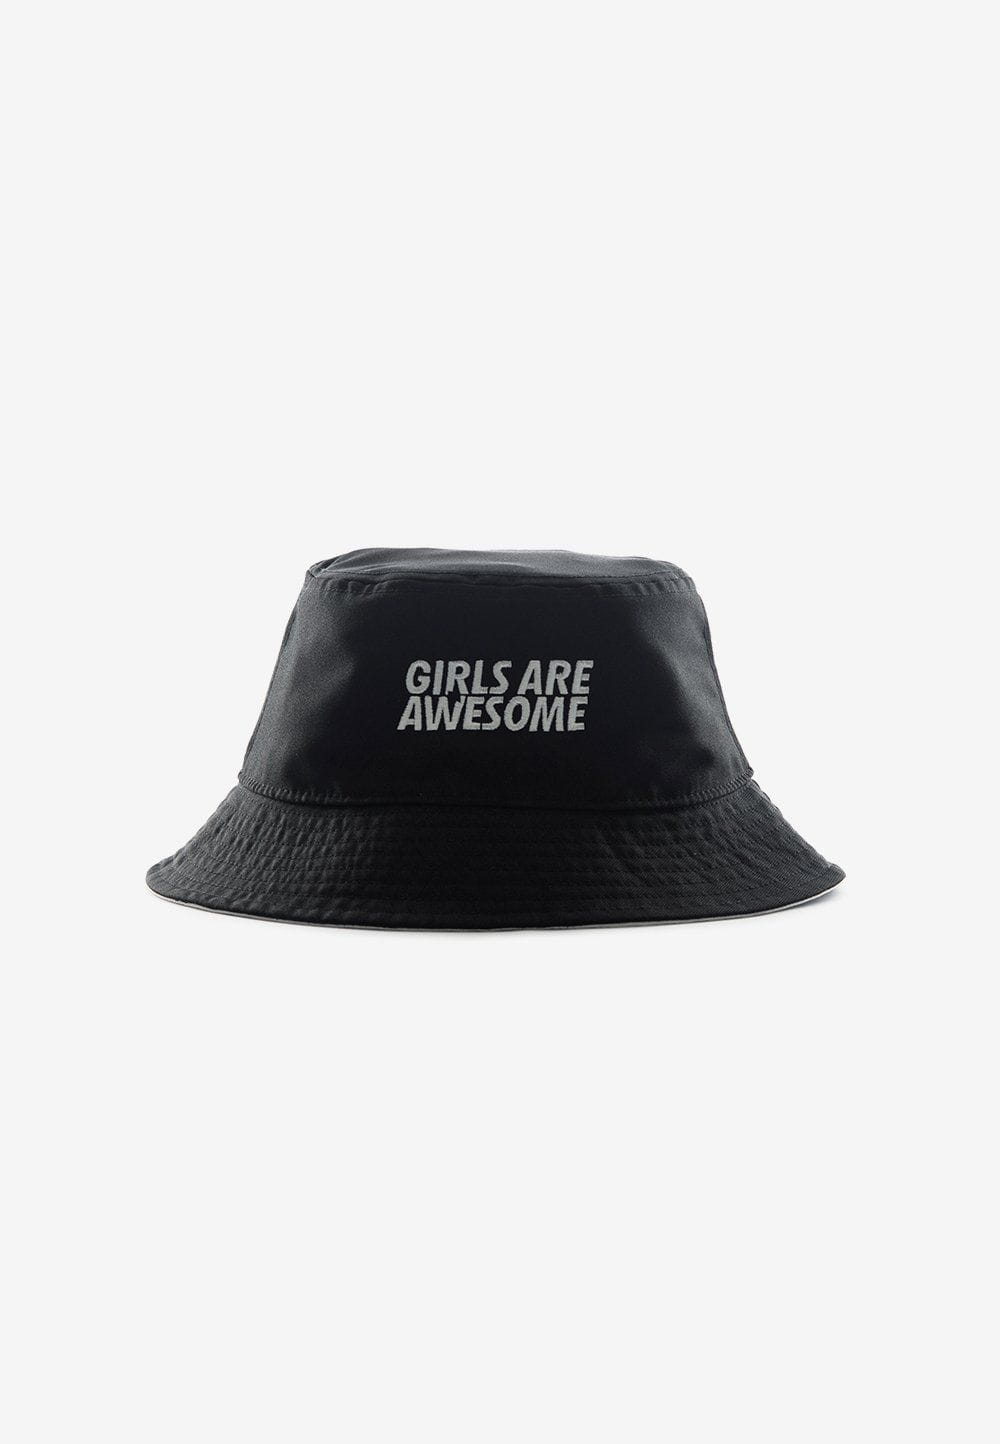 adidas Apparel OS Girls Are Awesome x adidas Bucket Hat